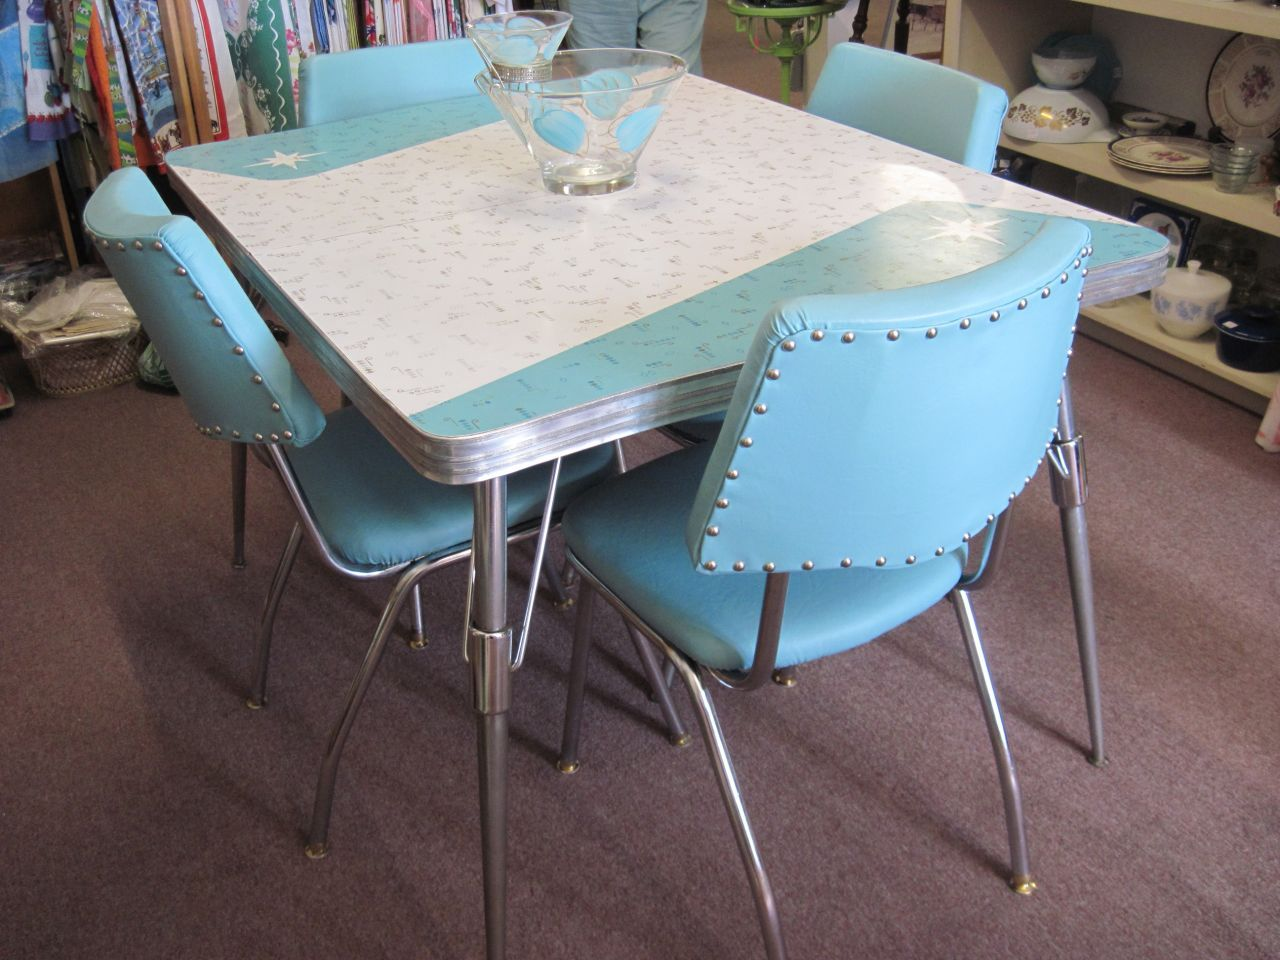 Delicate kitchen on interior home inspiration with vintage kitchen table